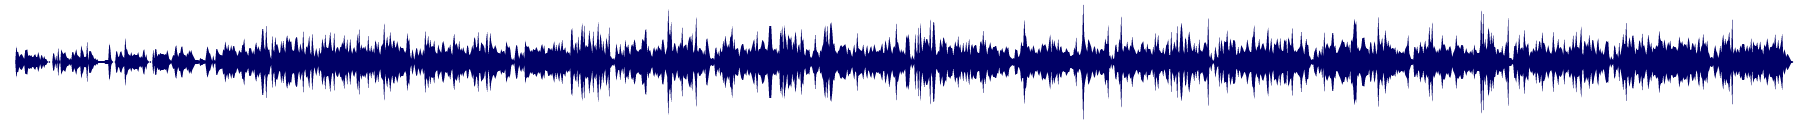 waveform of track #67422